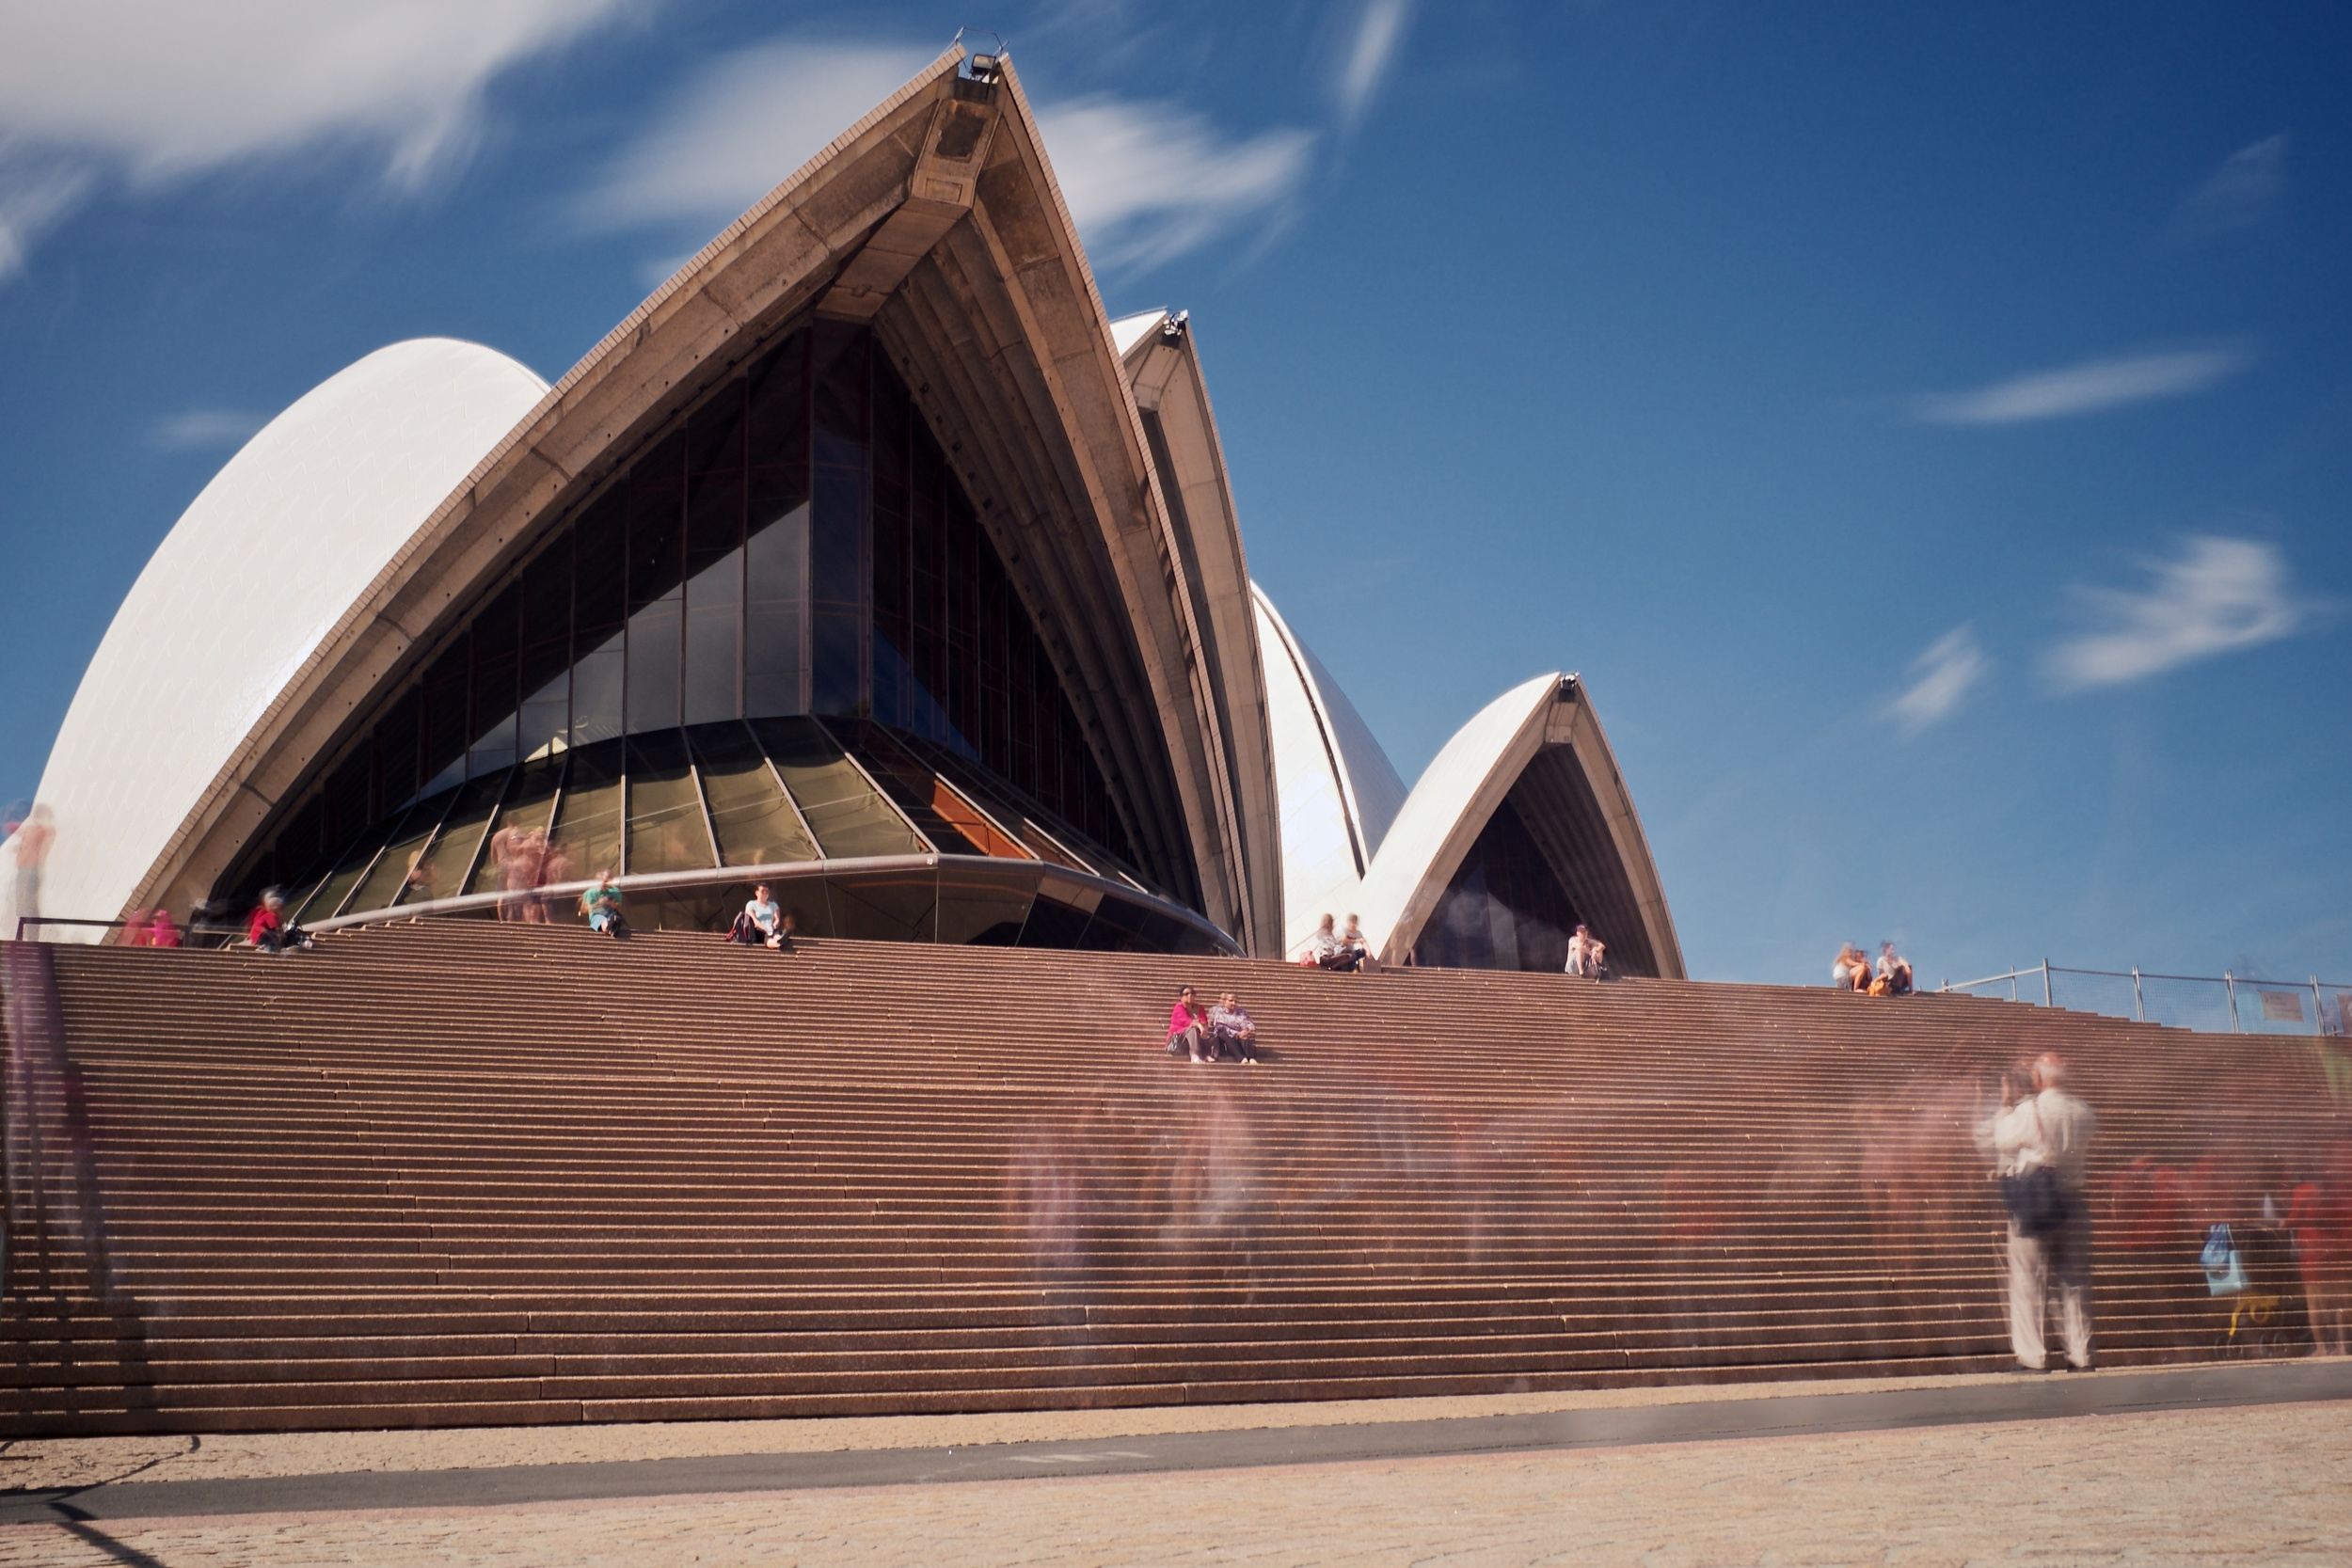 A long exposure photograph of the Sydney Opera House in midday sun.